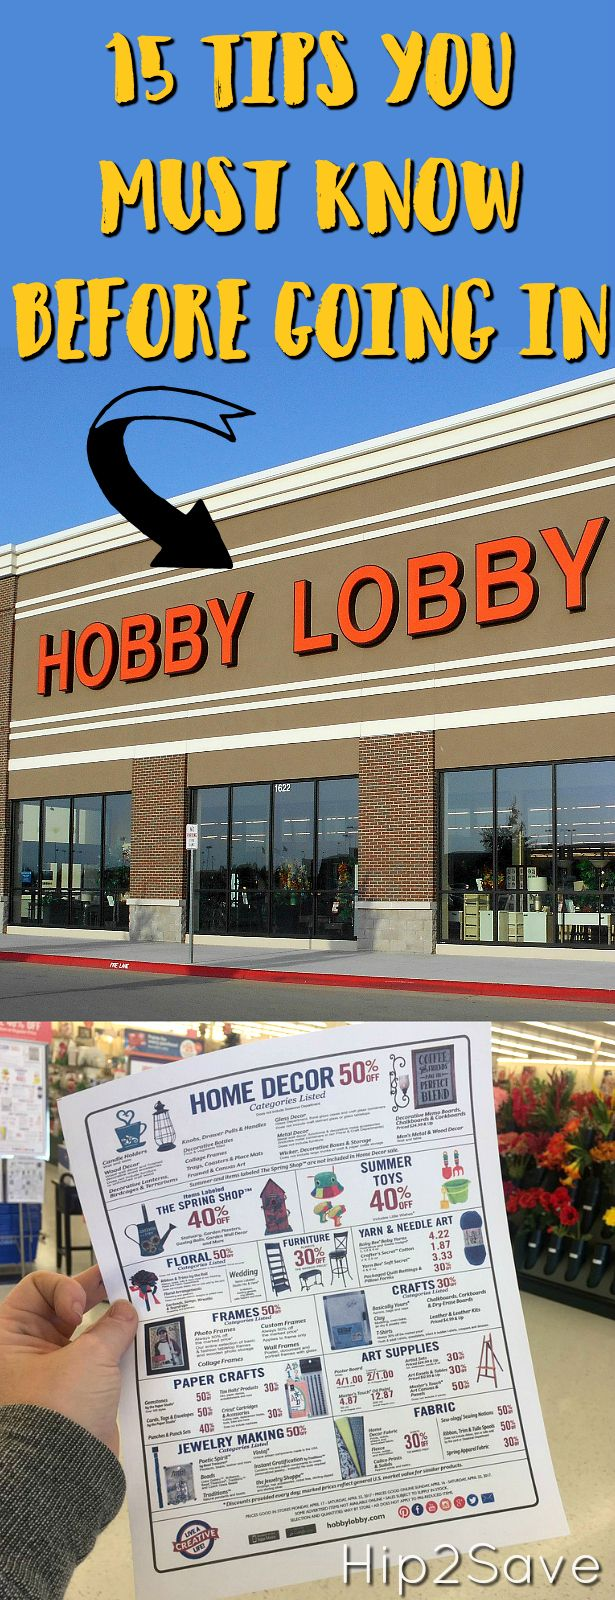 Hobby lobby craft bags - 15 Hobby Lobby Savings Secrets You Must Know To Save Big